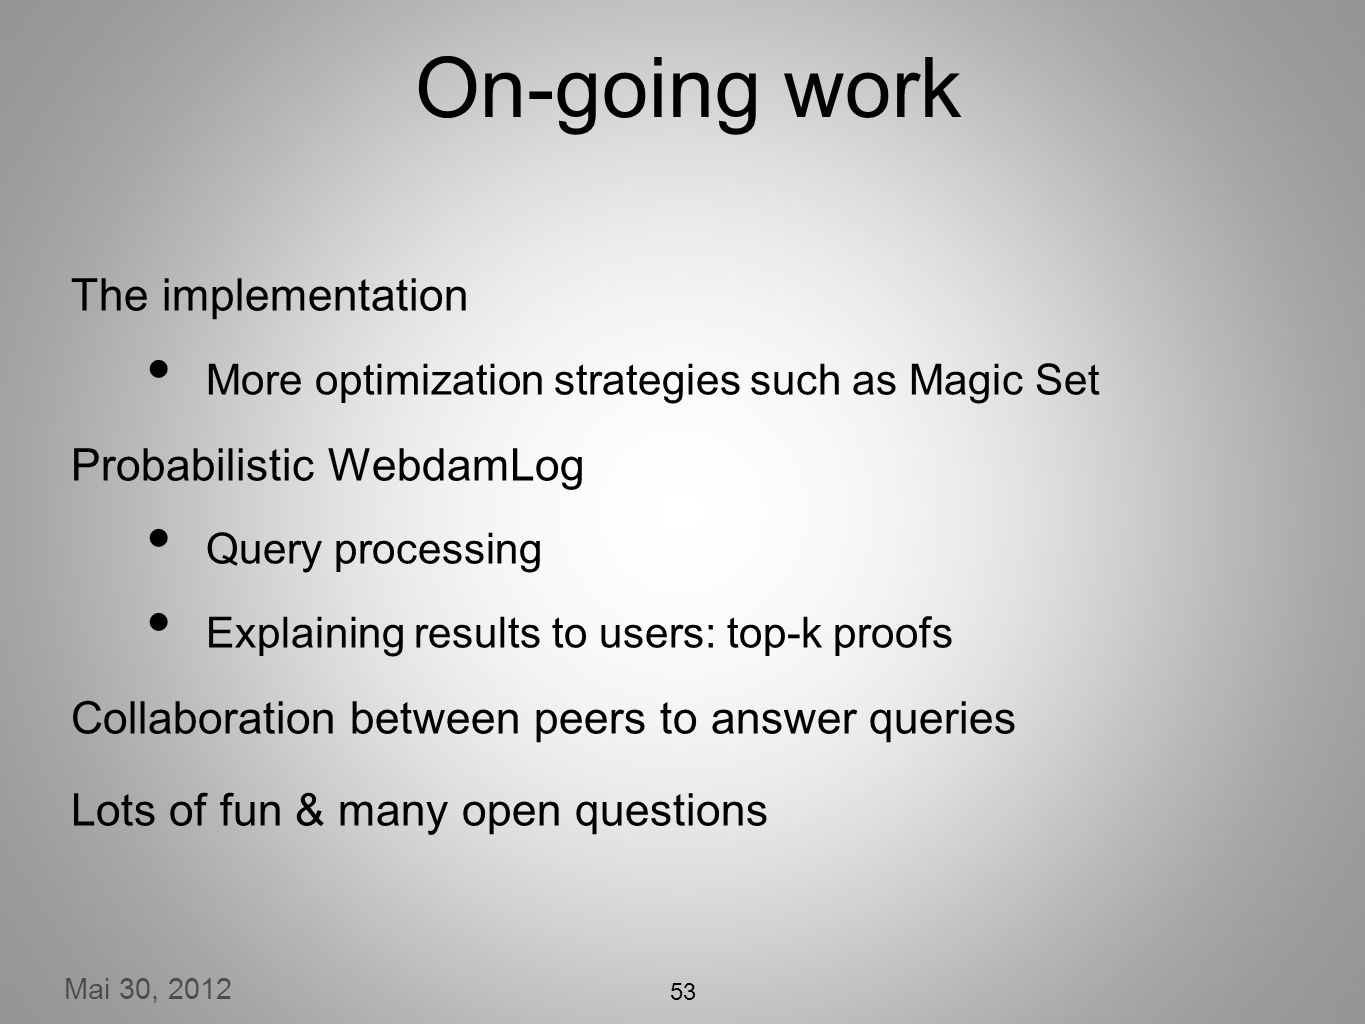 Mai 30, 2012 On-going work The implementation More optimization strategies such as Magic Set Probabilistic WebdamLog Query processing Explaining results to users: top-k proofs Collaboration between peers to answer queries Lots of fun & many open questions 53